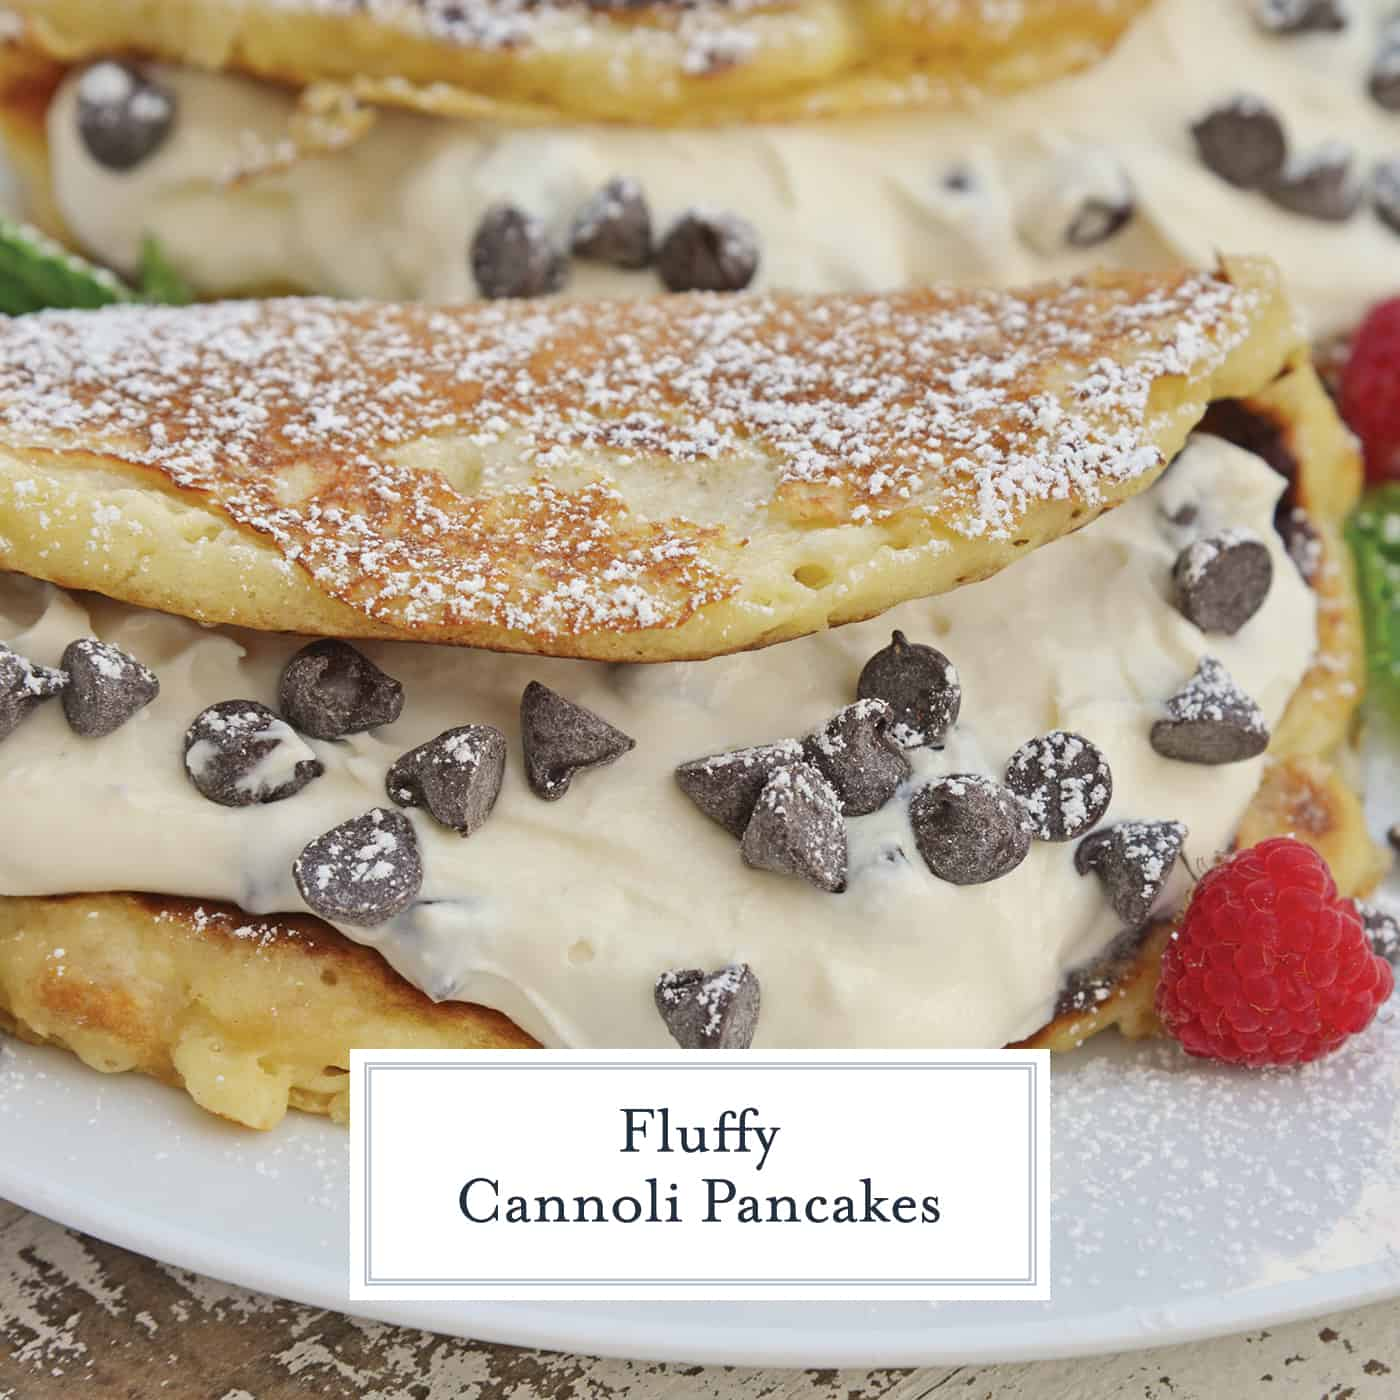 Cannoli Pancakes are stuffed with a rich, delicious cannoli filling. This breakfast cannoli is perfect for special breakfasts and brunches. #cannolipancakes #breakfastcannoli #cannolifilling www.savoryexperiments.com